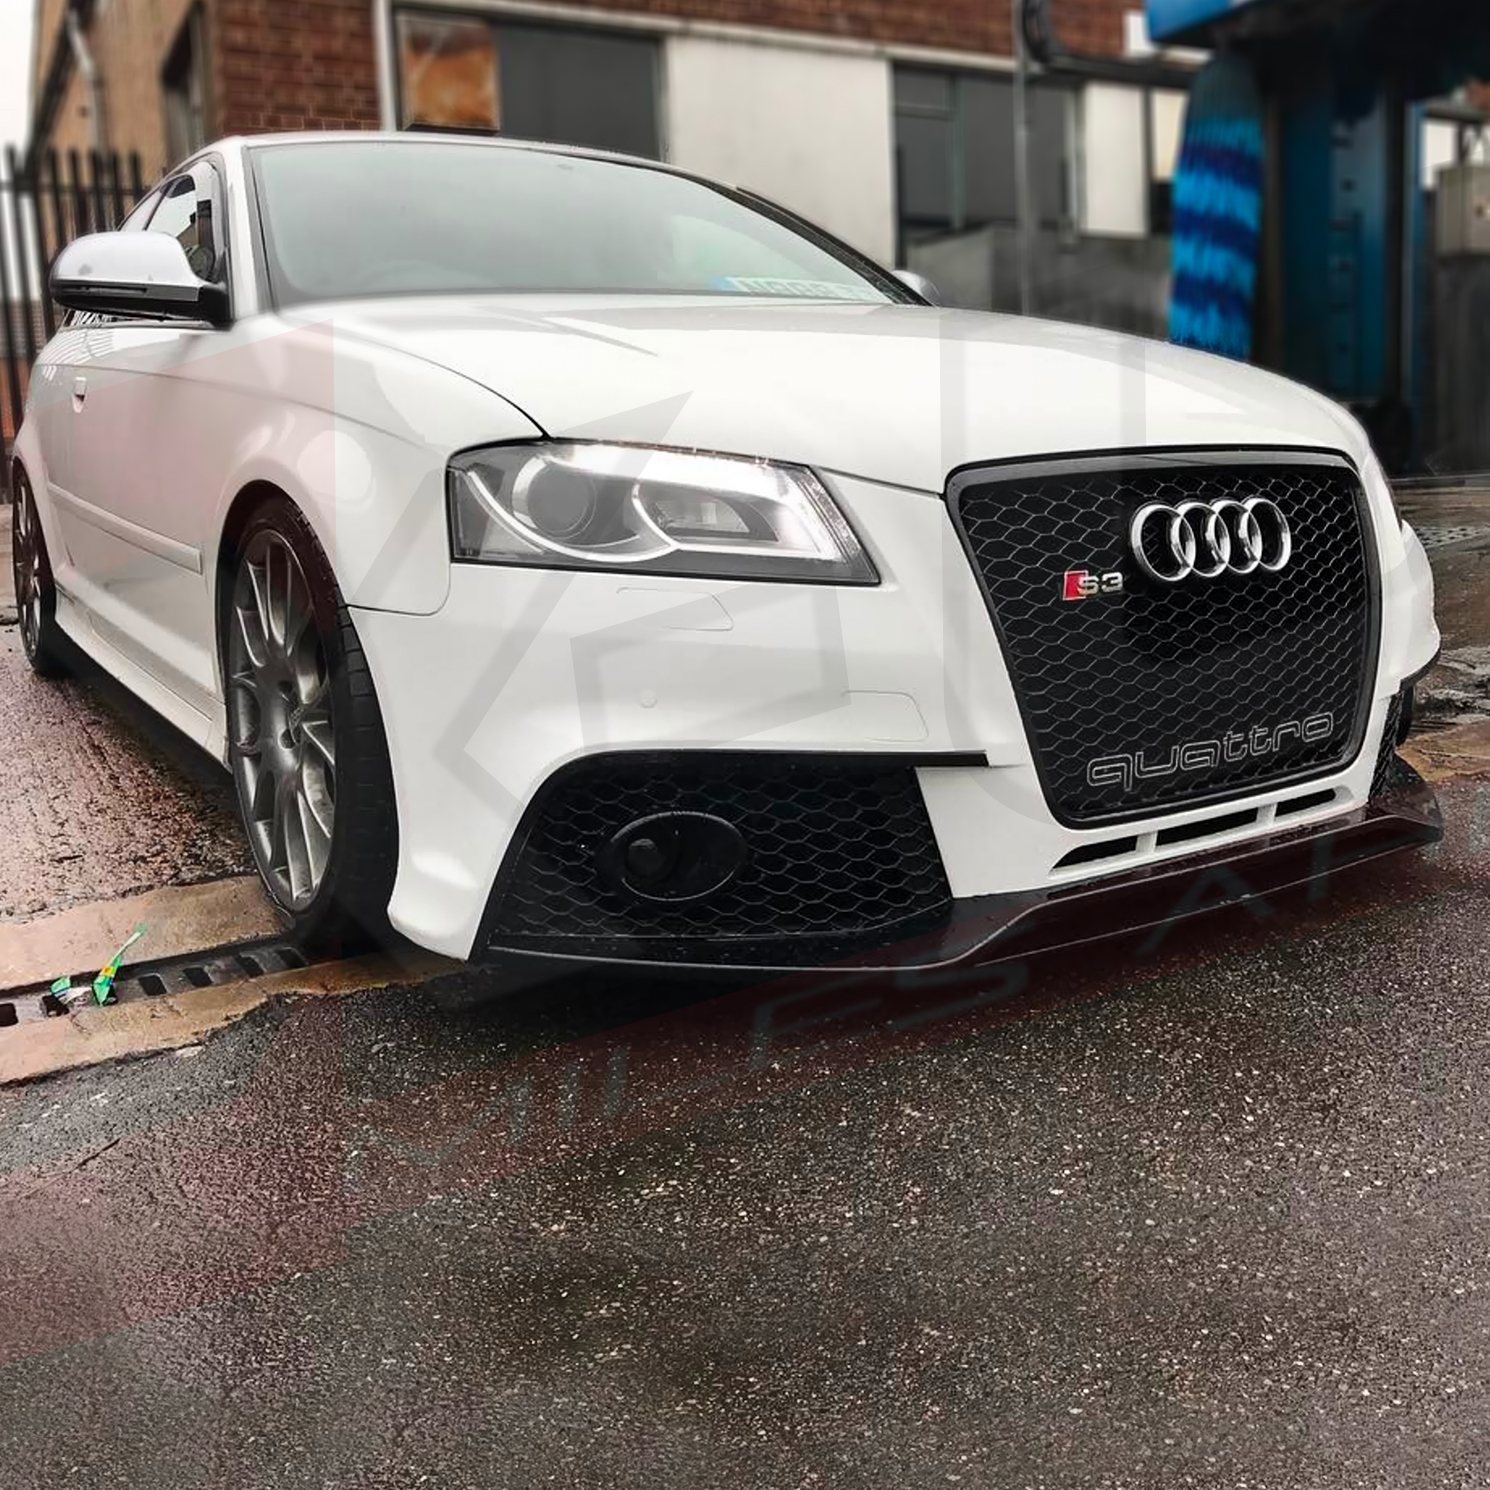 rs3 style front bumper conversion for audi a3 s3 2009 2012. Black Bedroom Furniture Sets. Home Design Ideas